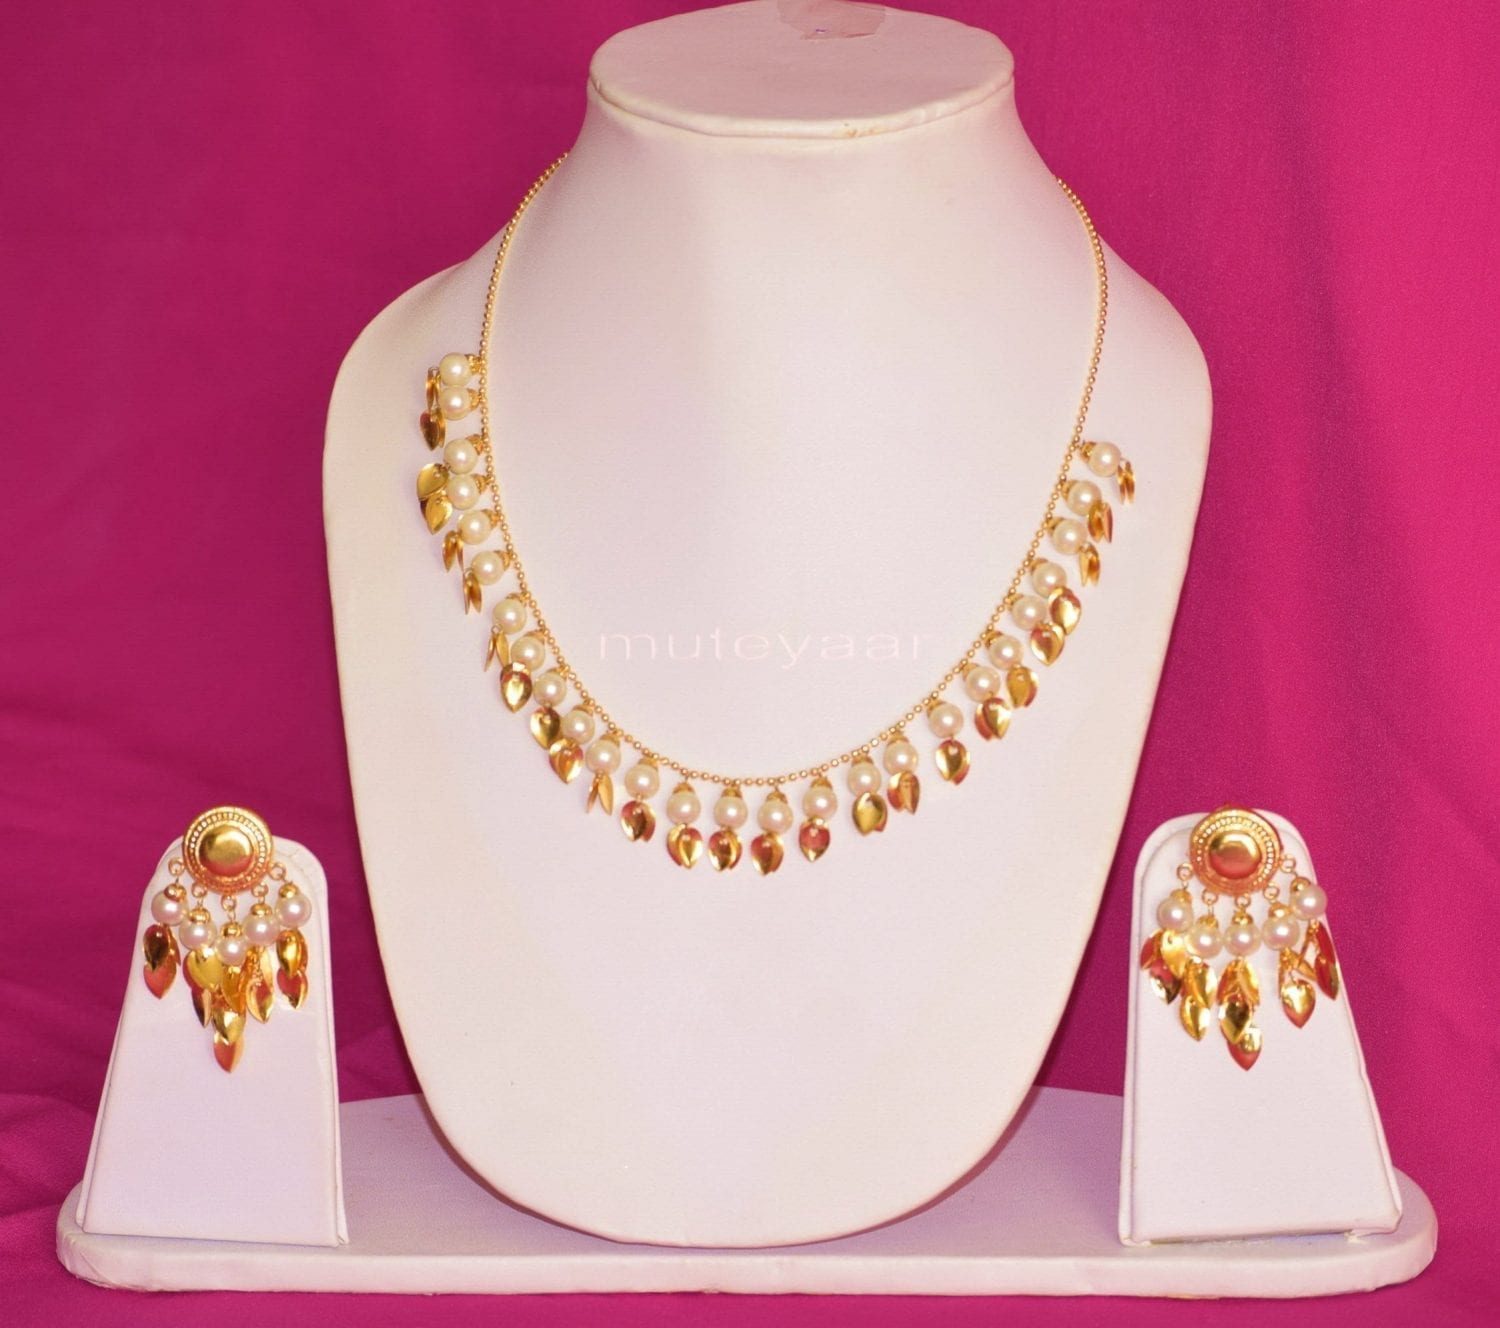 24 Ct. Gold Plated Traditional Punjabi chain set with Moti Beads J0212 1